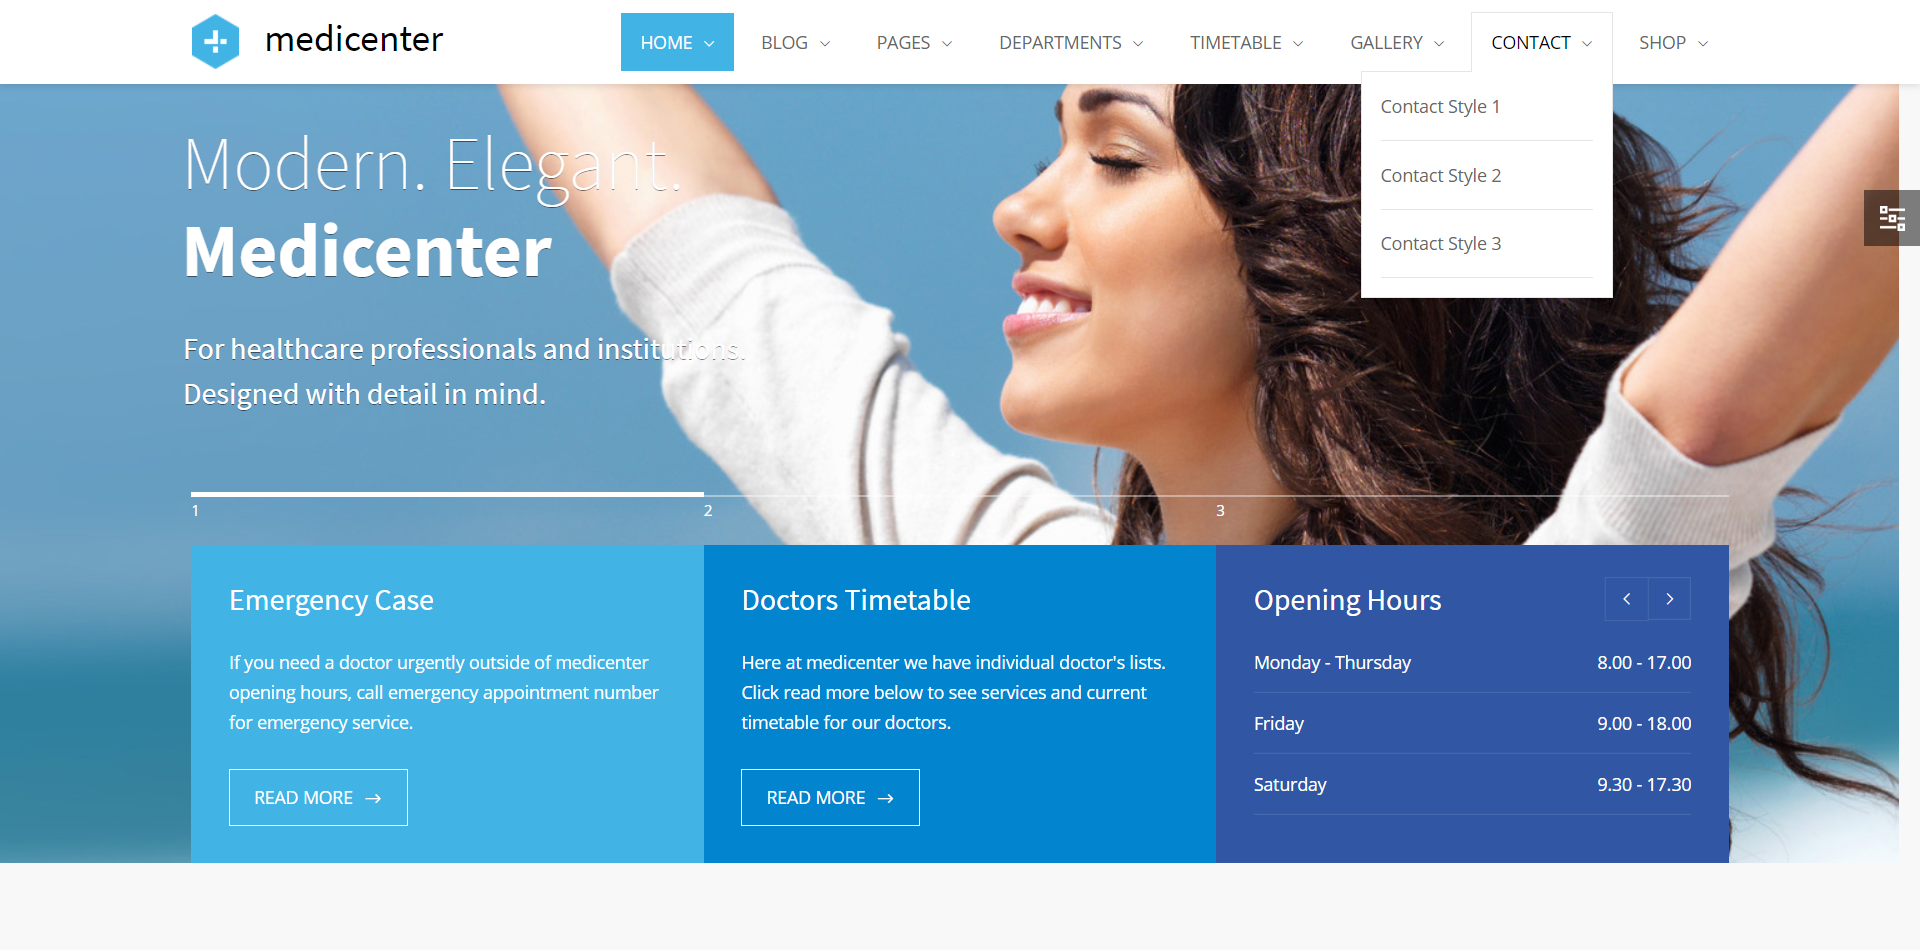 Medicenter medical WordPress Theme screenshot